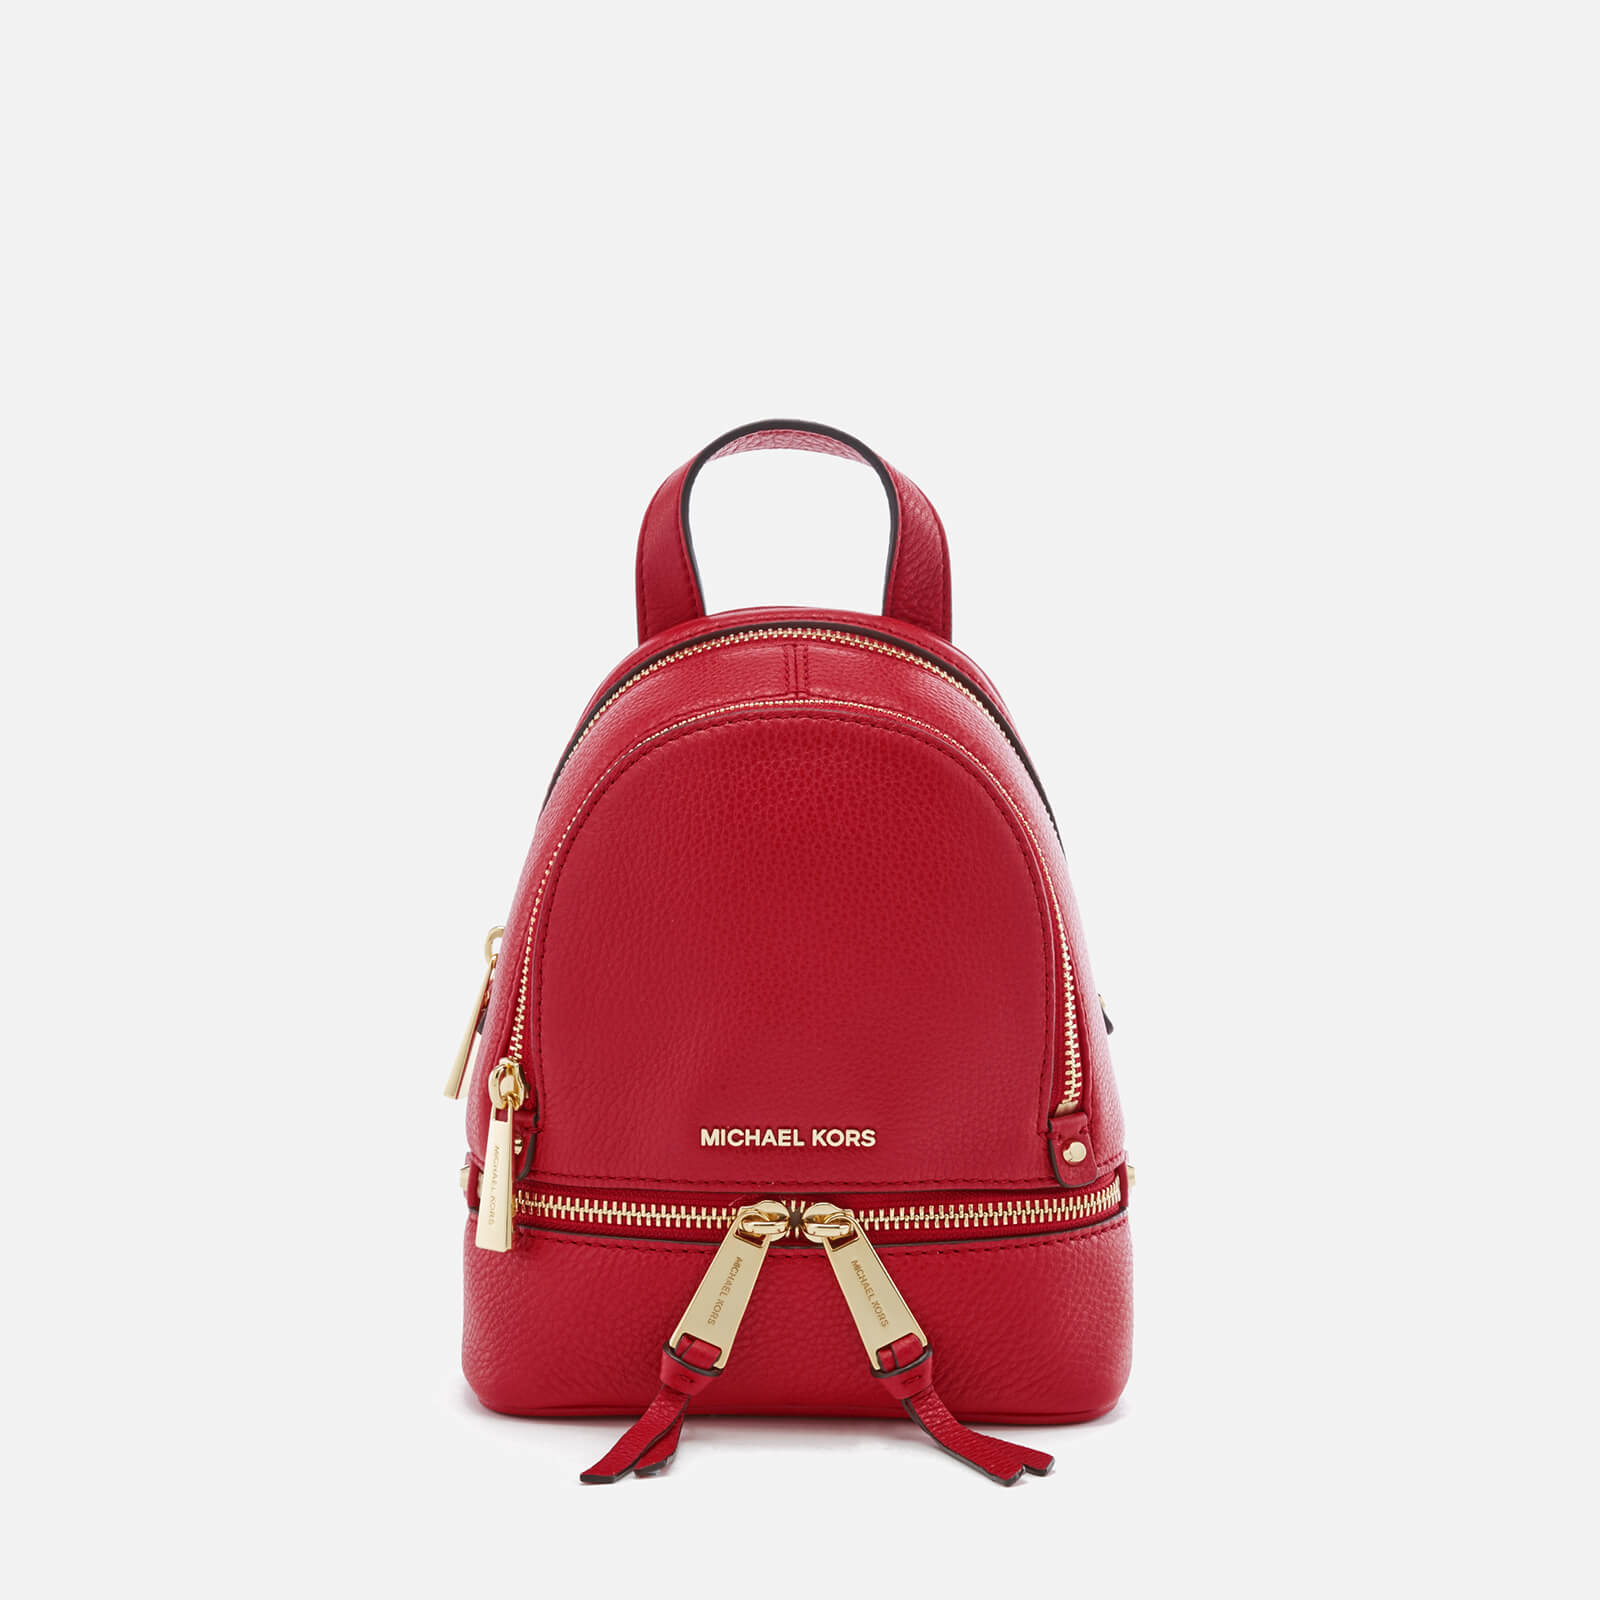 02d7c2e22297 MICHAEL MICHAEL KORS Women's Rhea Zip Extra Small Backpack - Bright Red -  Free UK Delivery over £50